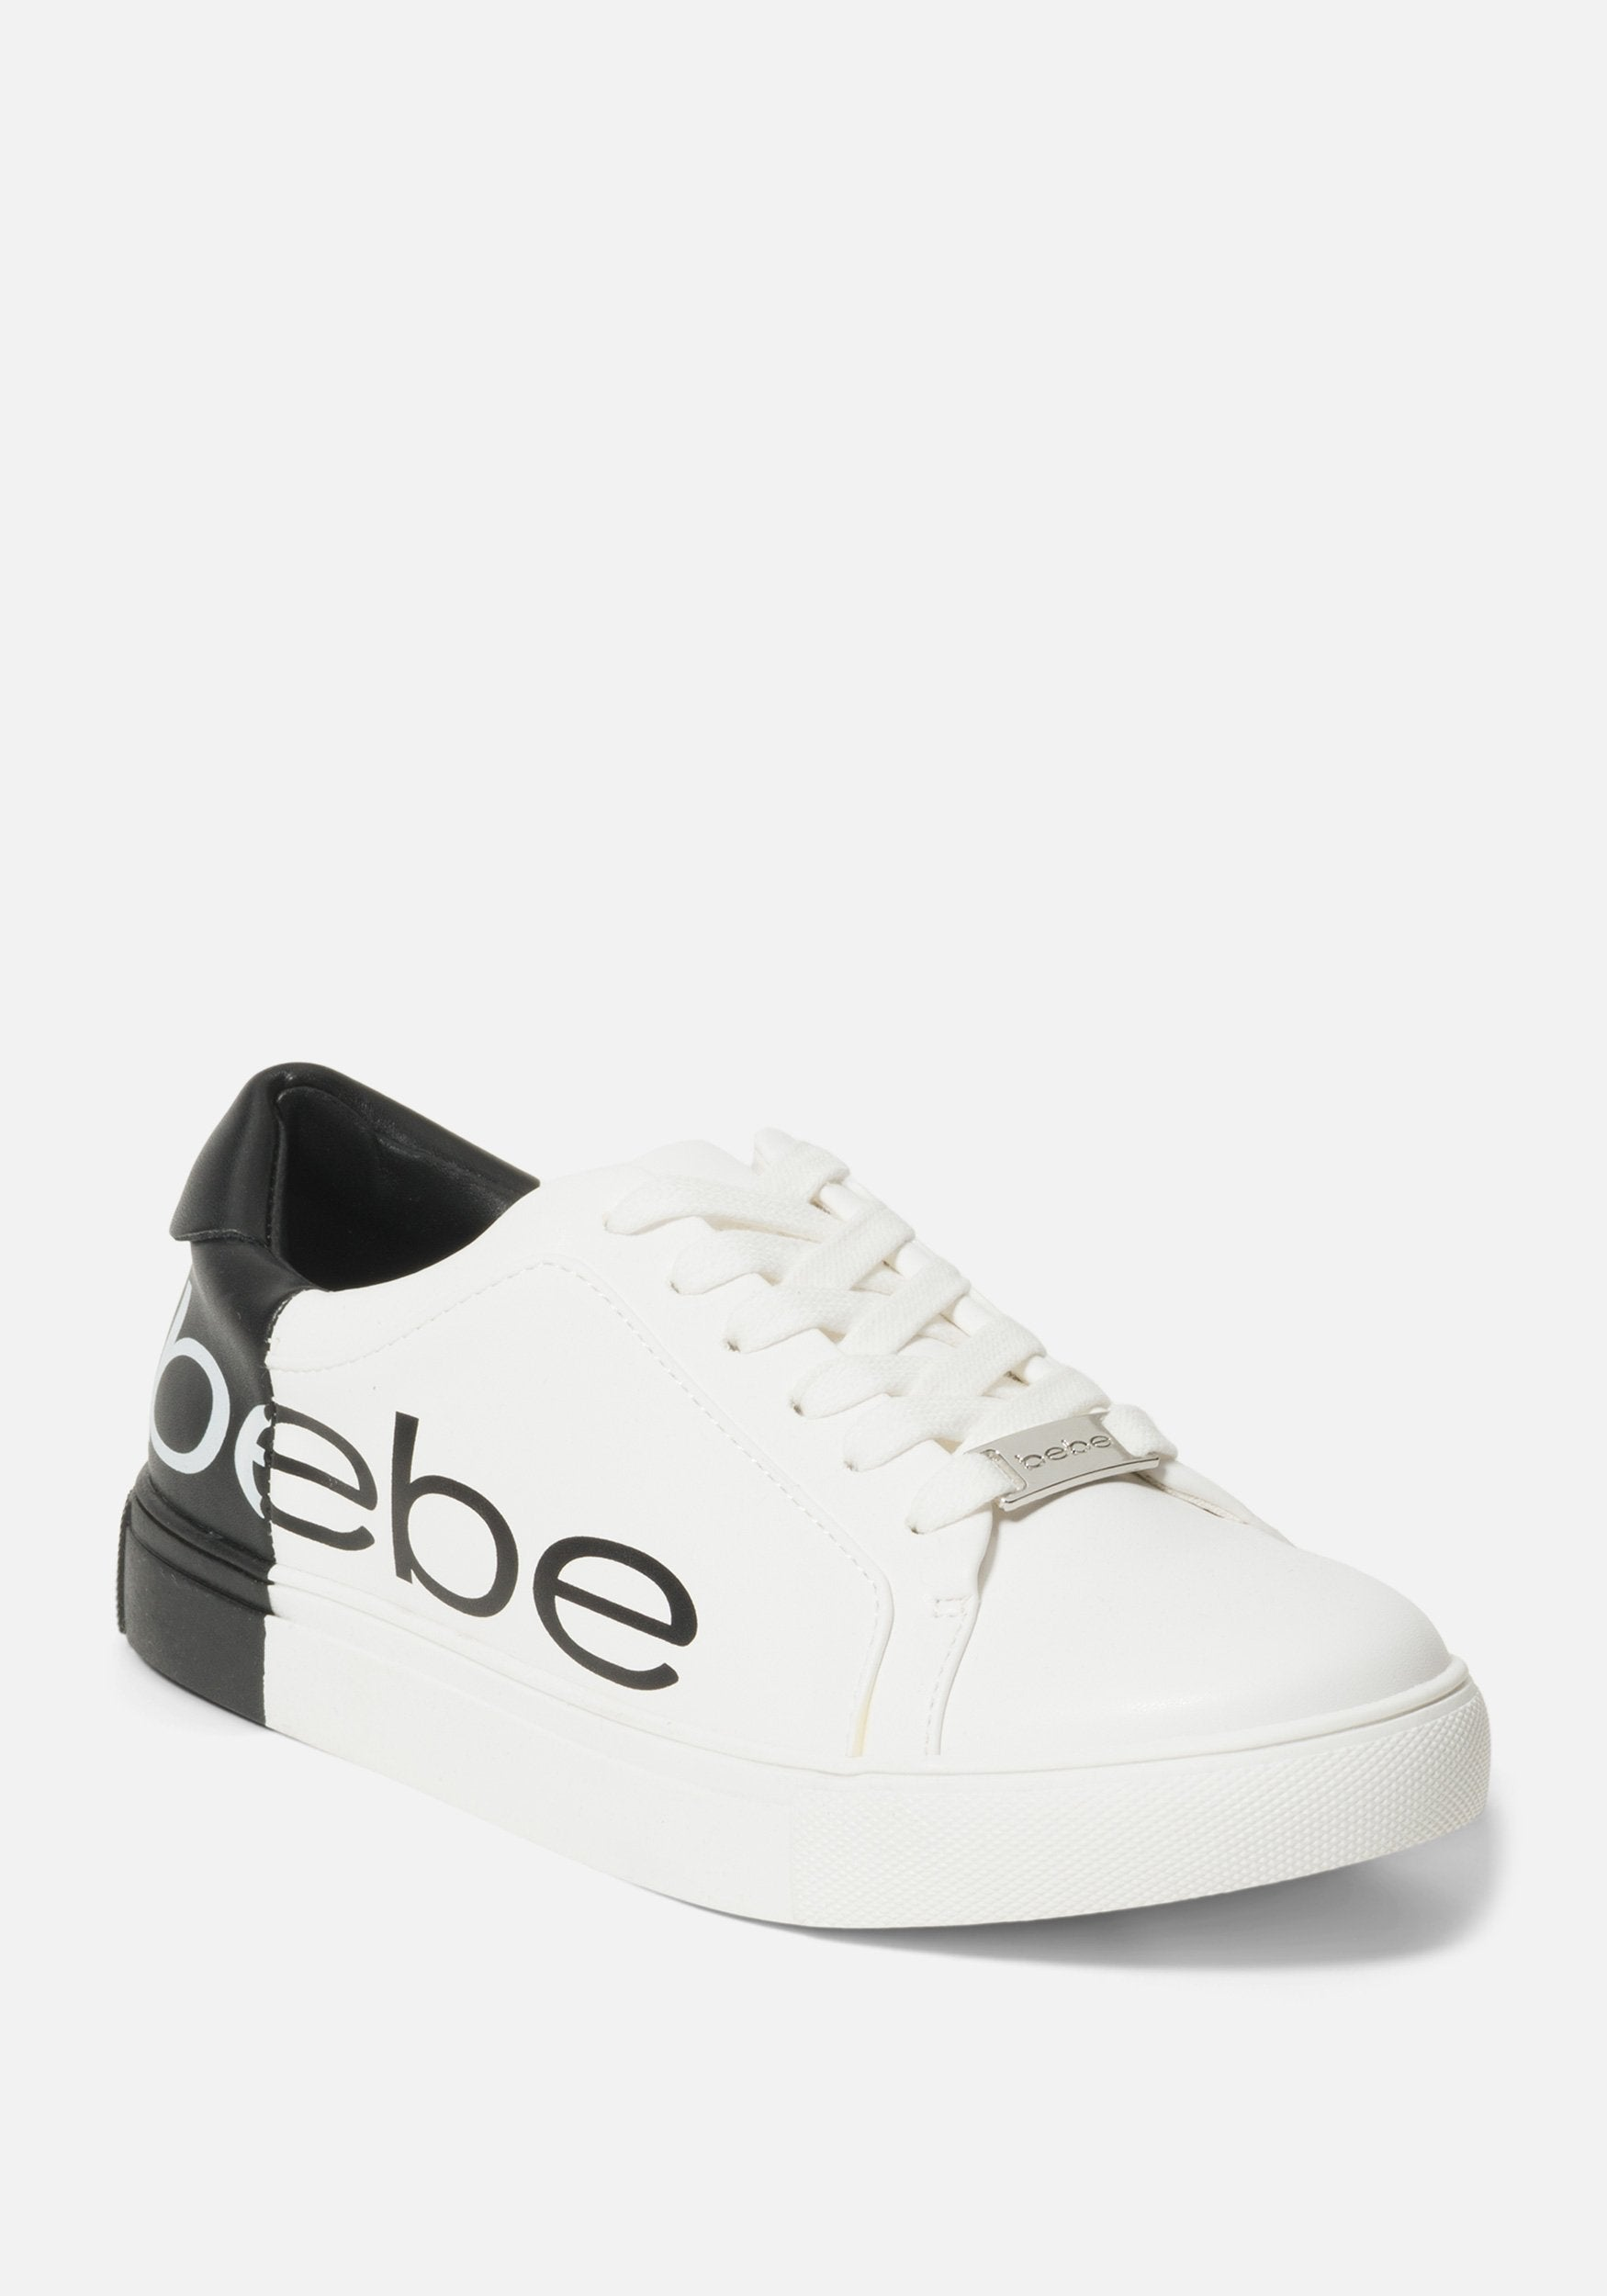 Women's Charley Bebe Logo Sneakers, Size 6 in White/Black Synthetic